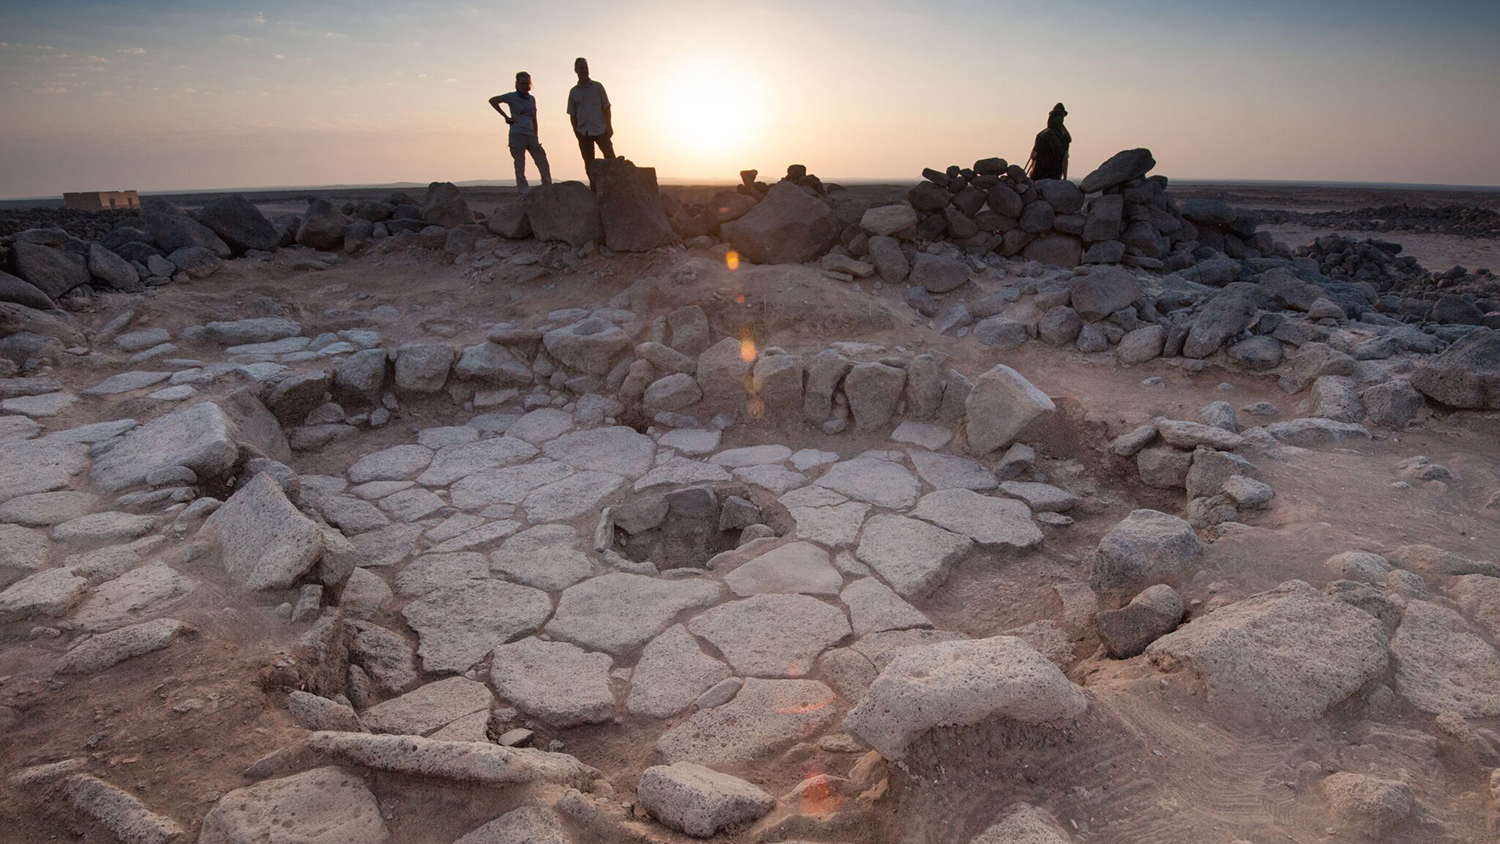 Ancient bread predates agriculture by 4,000 years